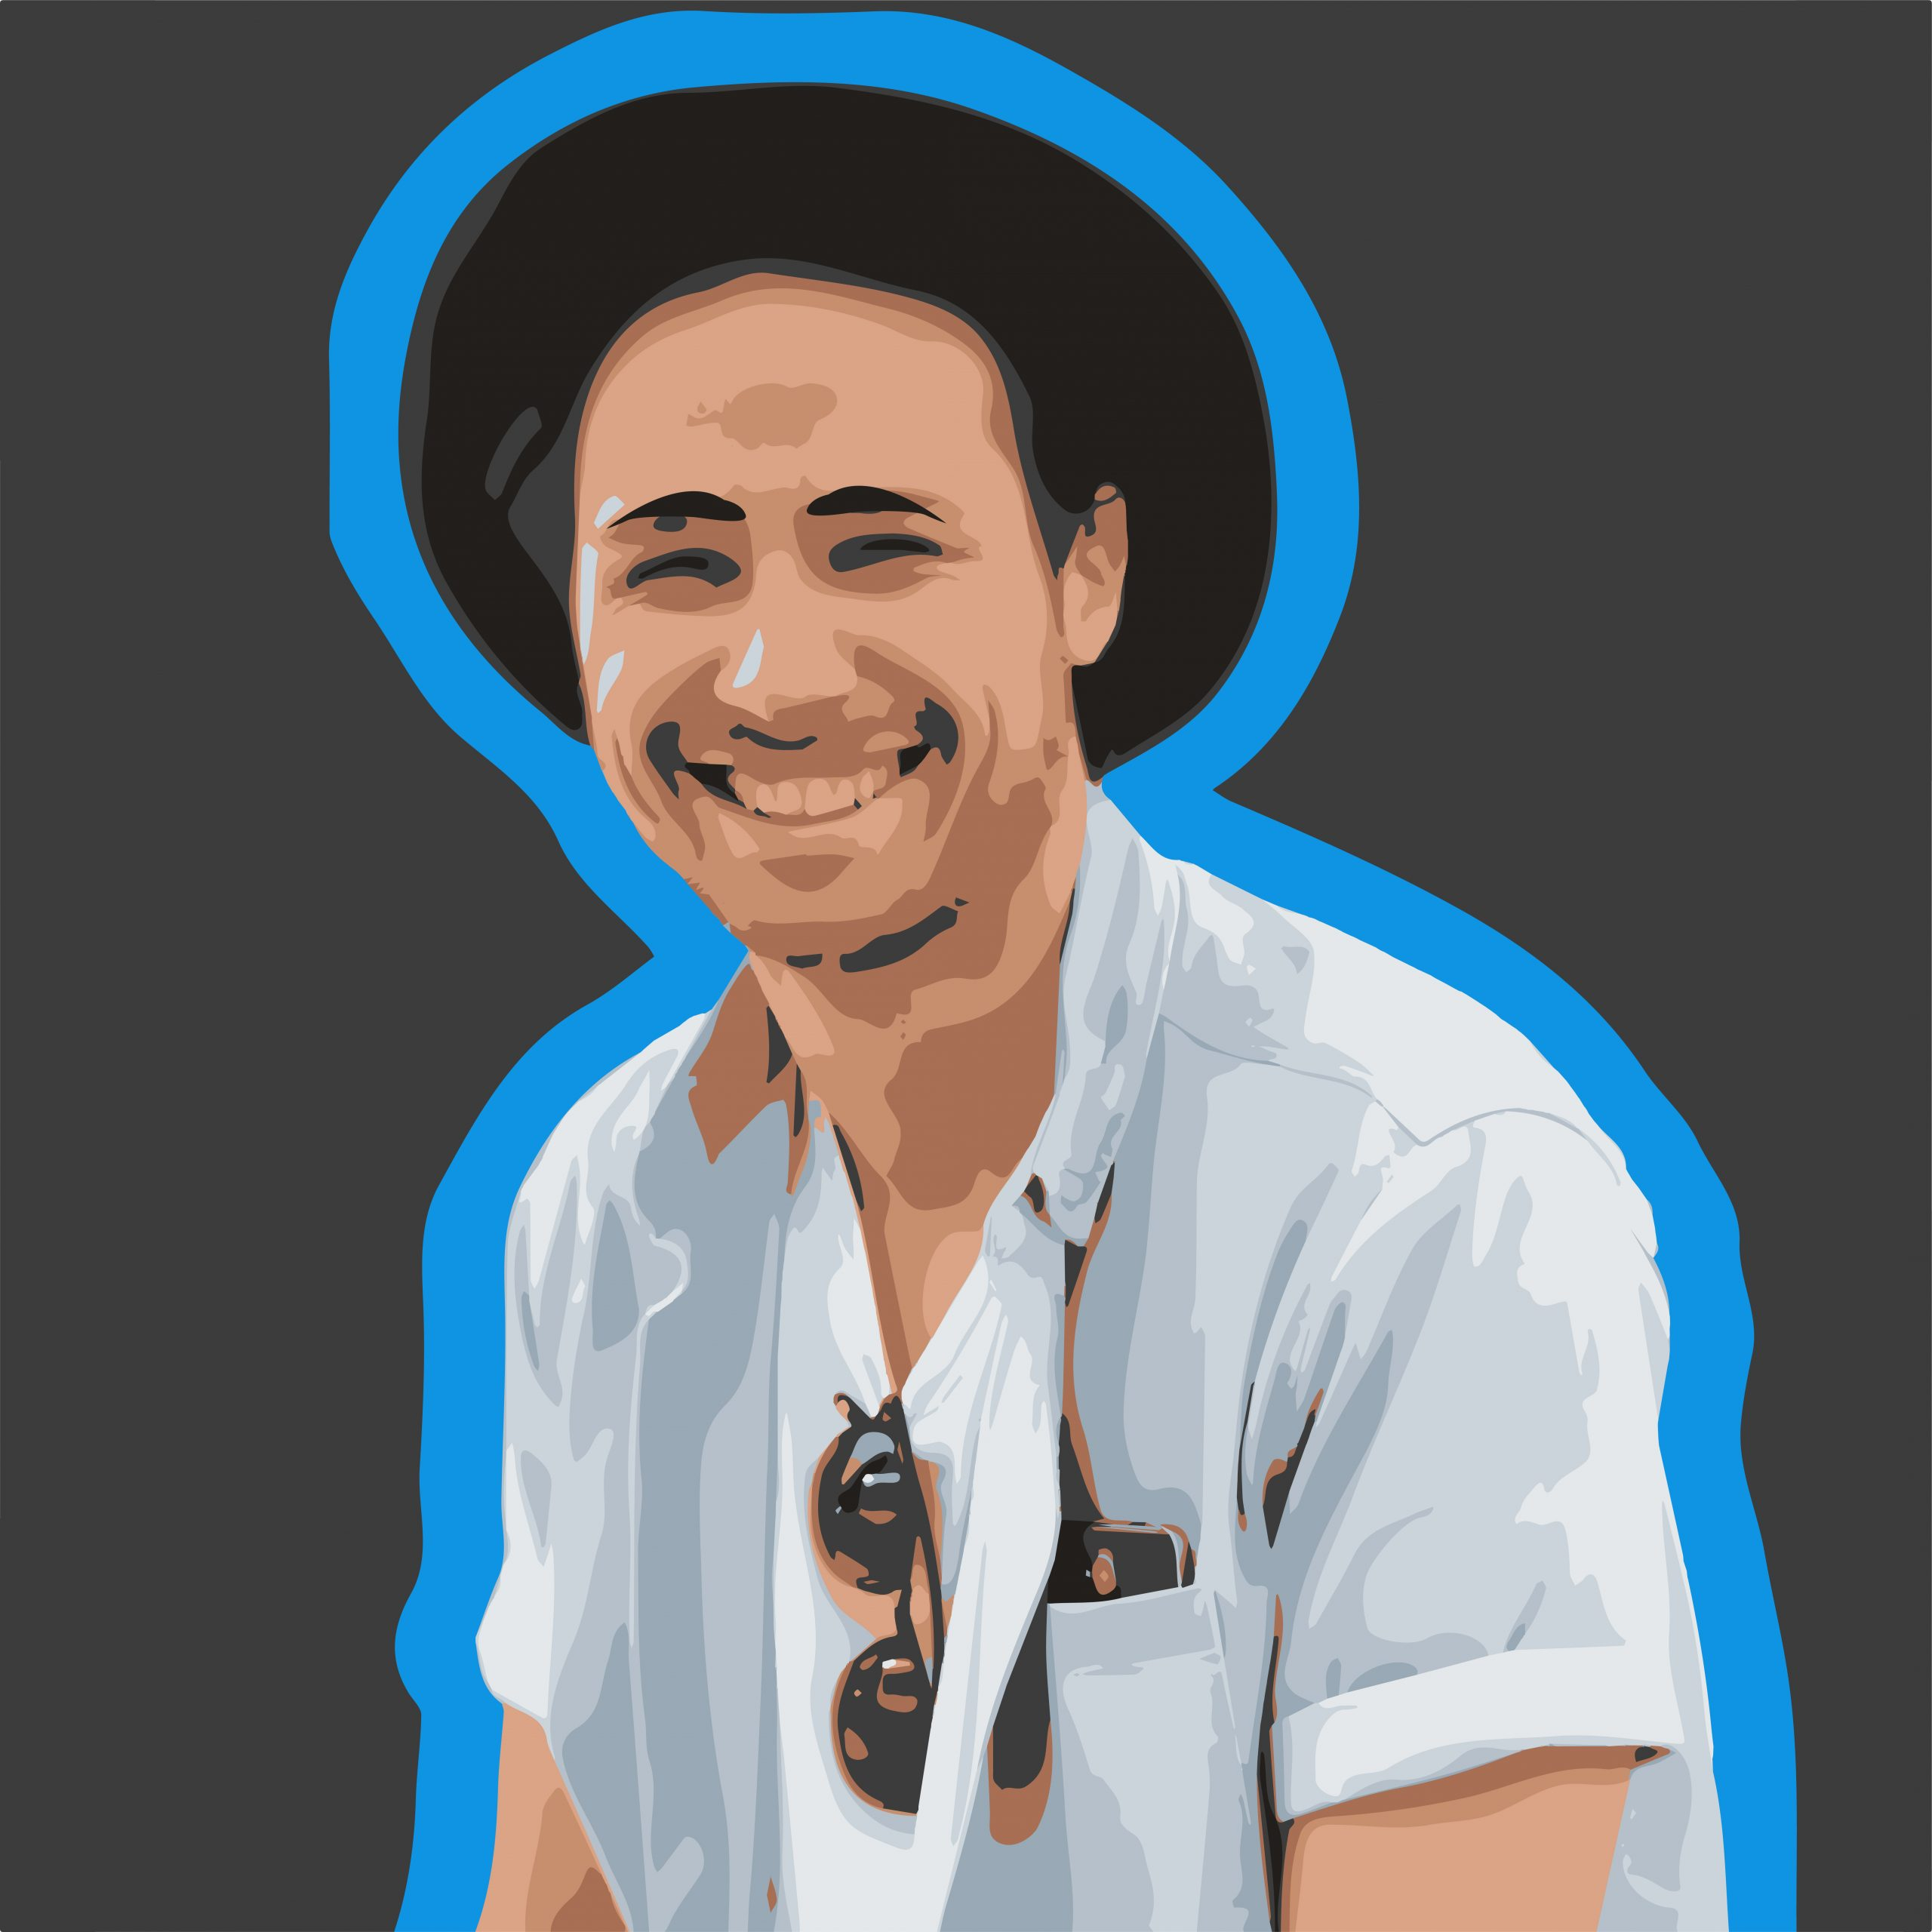 Smiling boy face illustration